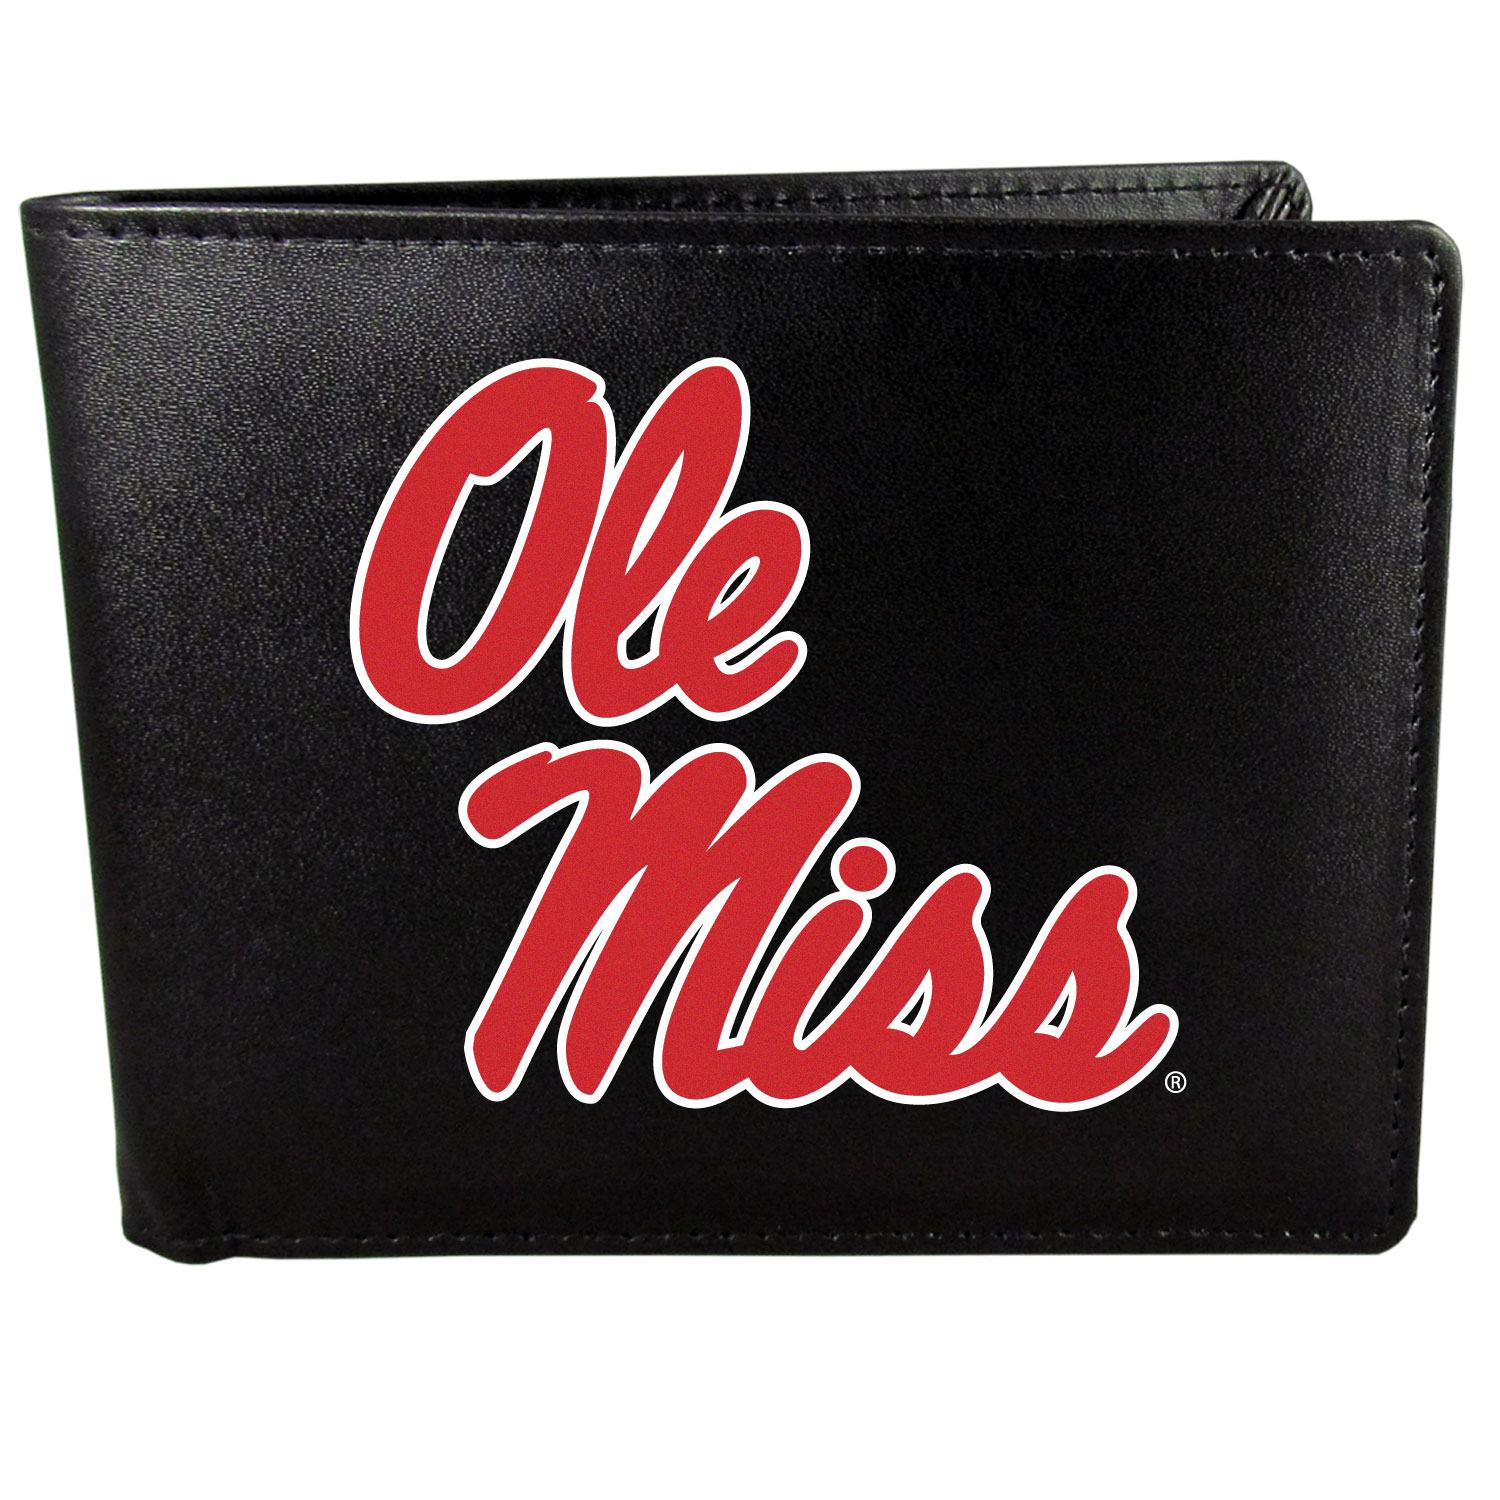 Mississippi Rebels Leather Bi-fold Wallet, Large Logo - Our classic fine leather bi-fold wallet is meticulously crafted with genuine leather that will age beautifully so you will have a quality wallet for years to come. The wallet opens to a large, billfold pocket and numerous credit card slots and has a convenient windowed ID slot. The front of the wallet features an extra large Mississippi Rebels printed logo.